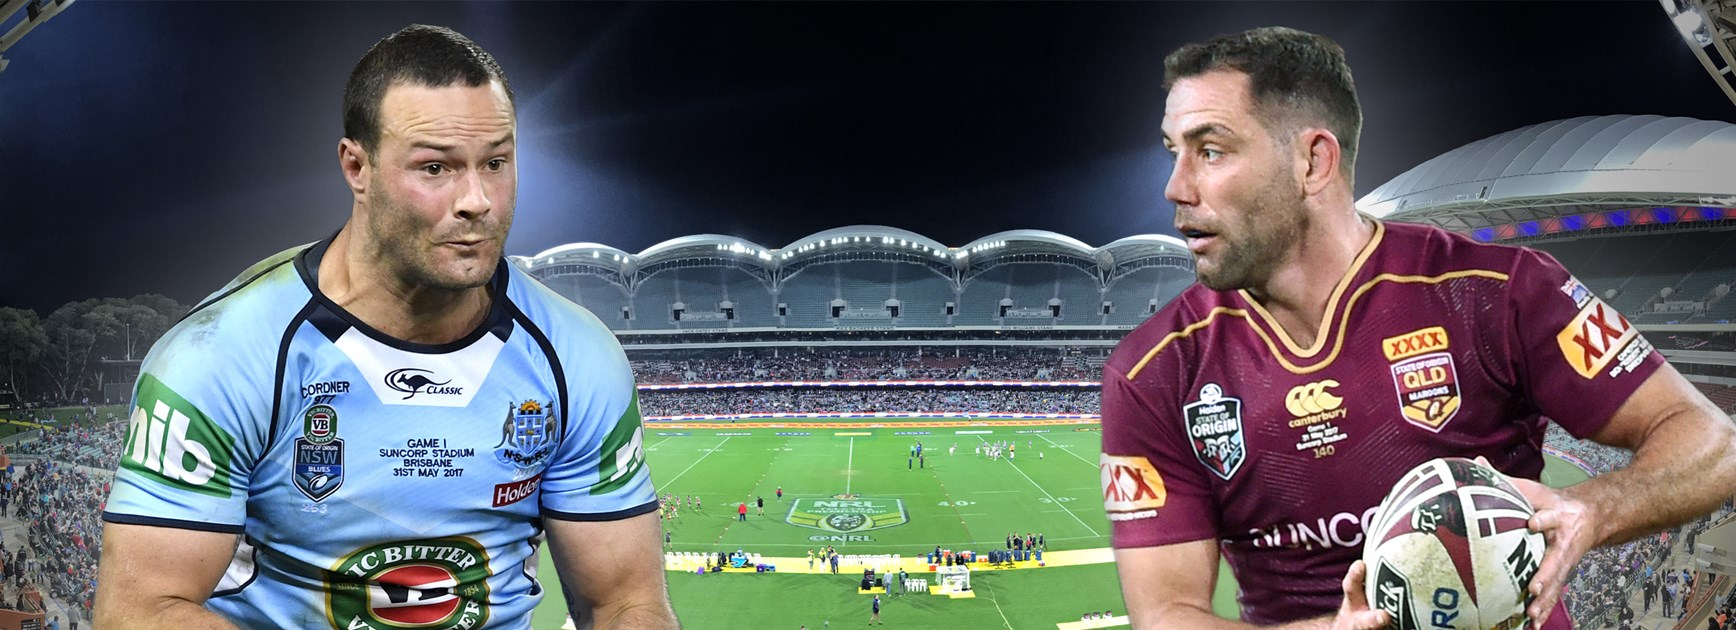 Adelaide Oval to host State of Origin match in 2020